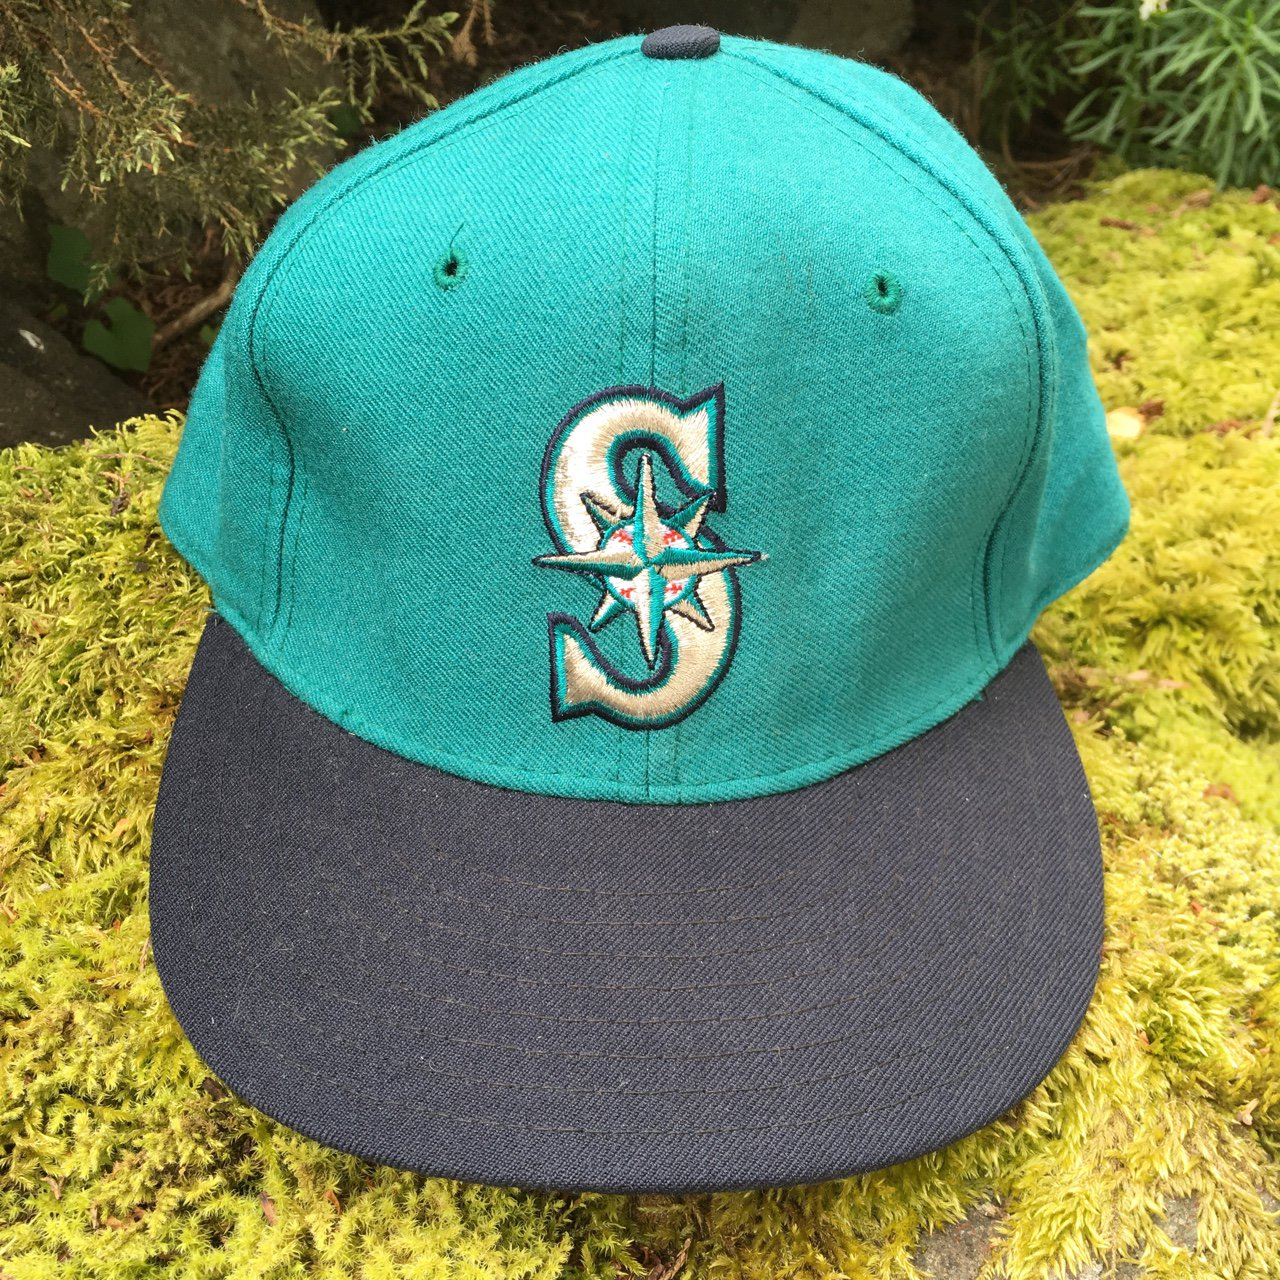 Vintage New Era 100 Percent Wool Teal Mariners Fitted 7 1 8 - Depop c336578a75c1